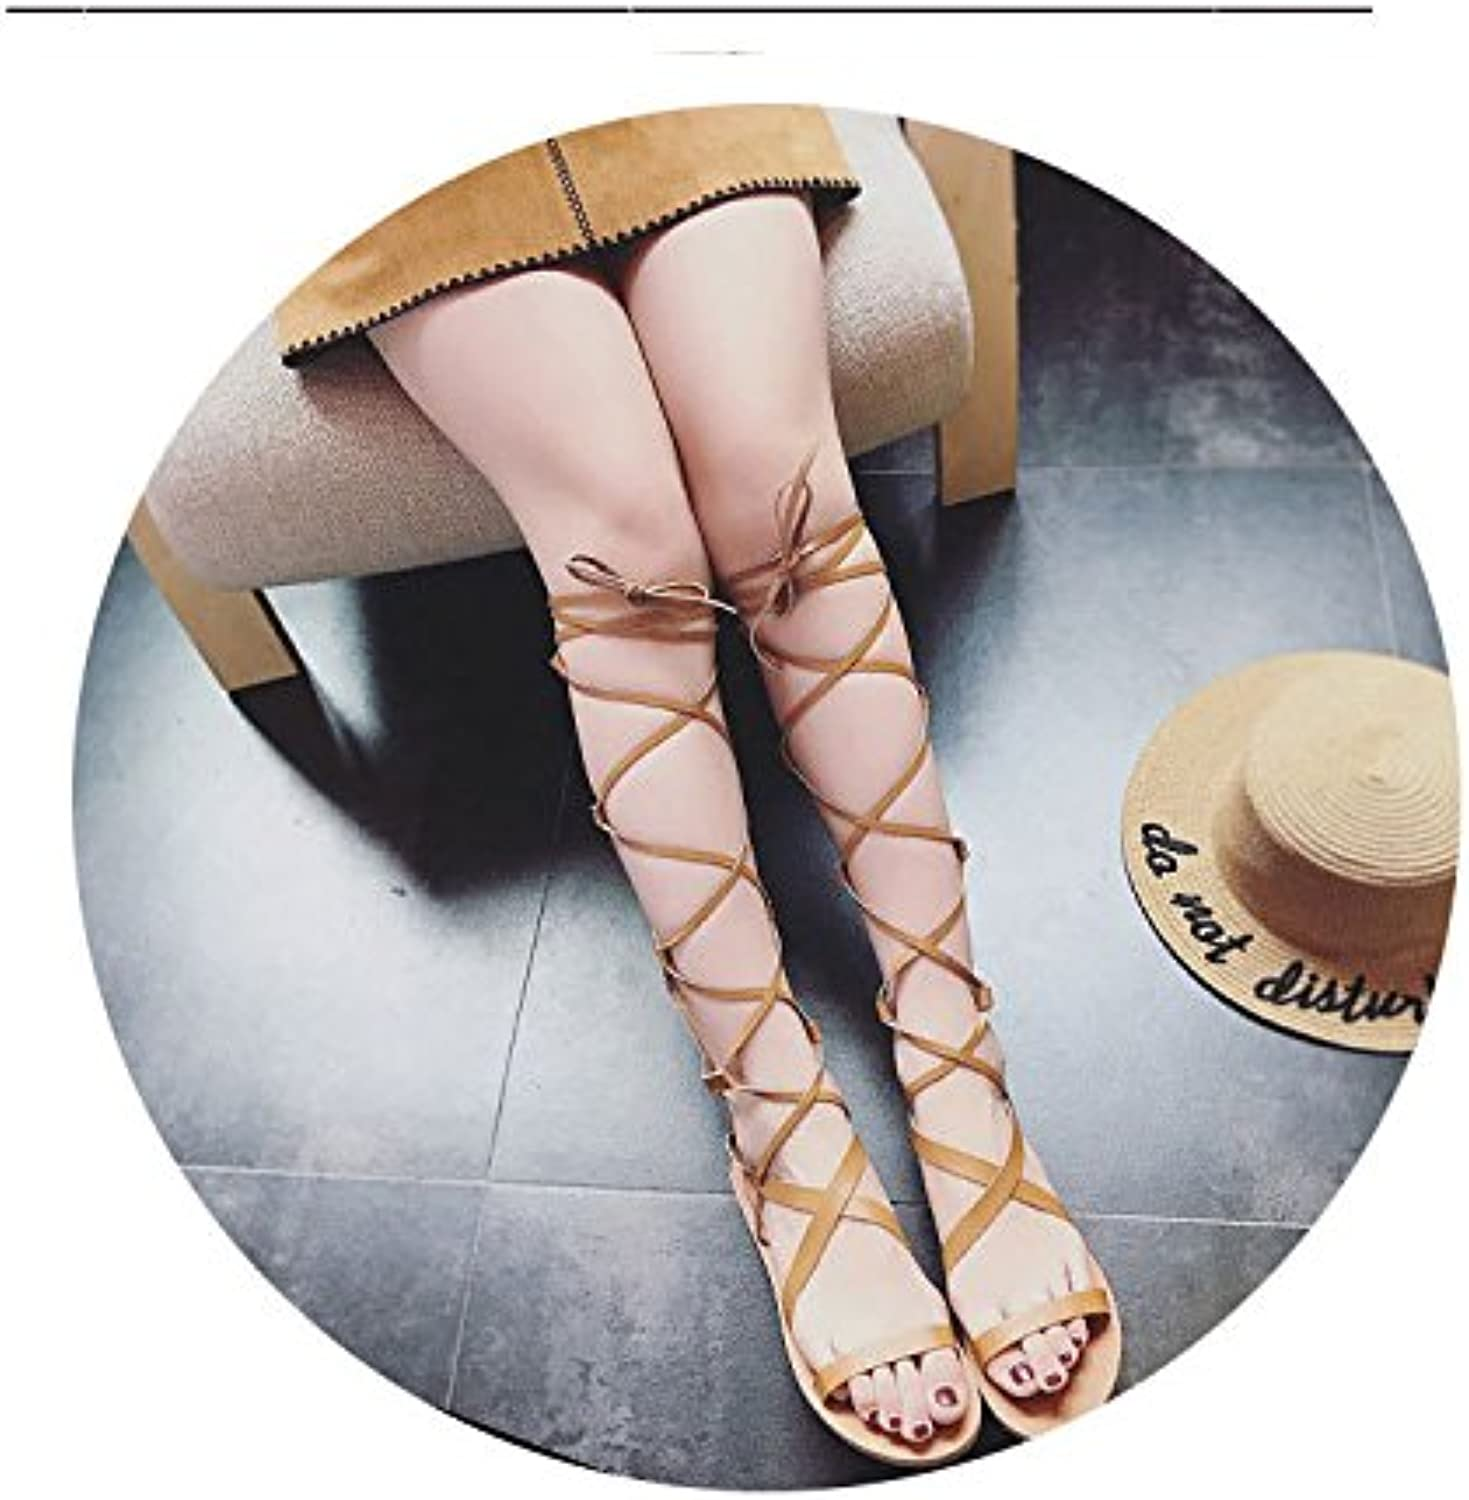 Ladies Cool Boots, Ladies Sandals, 2018 Summer Dew Toes, Flat and Long Women's shoes.